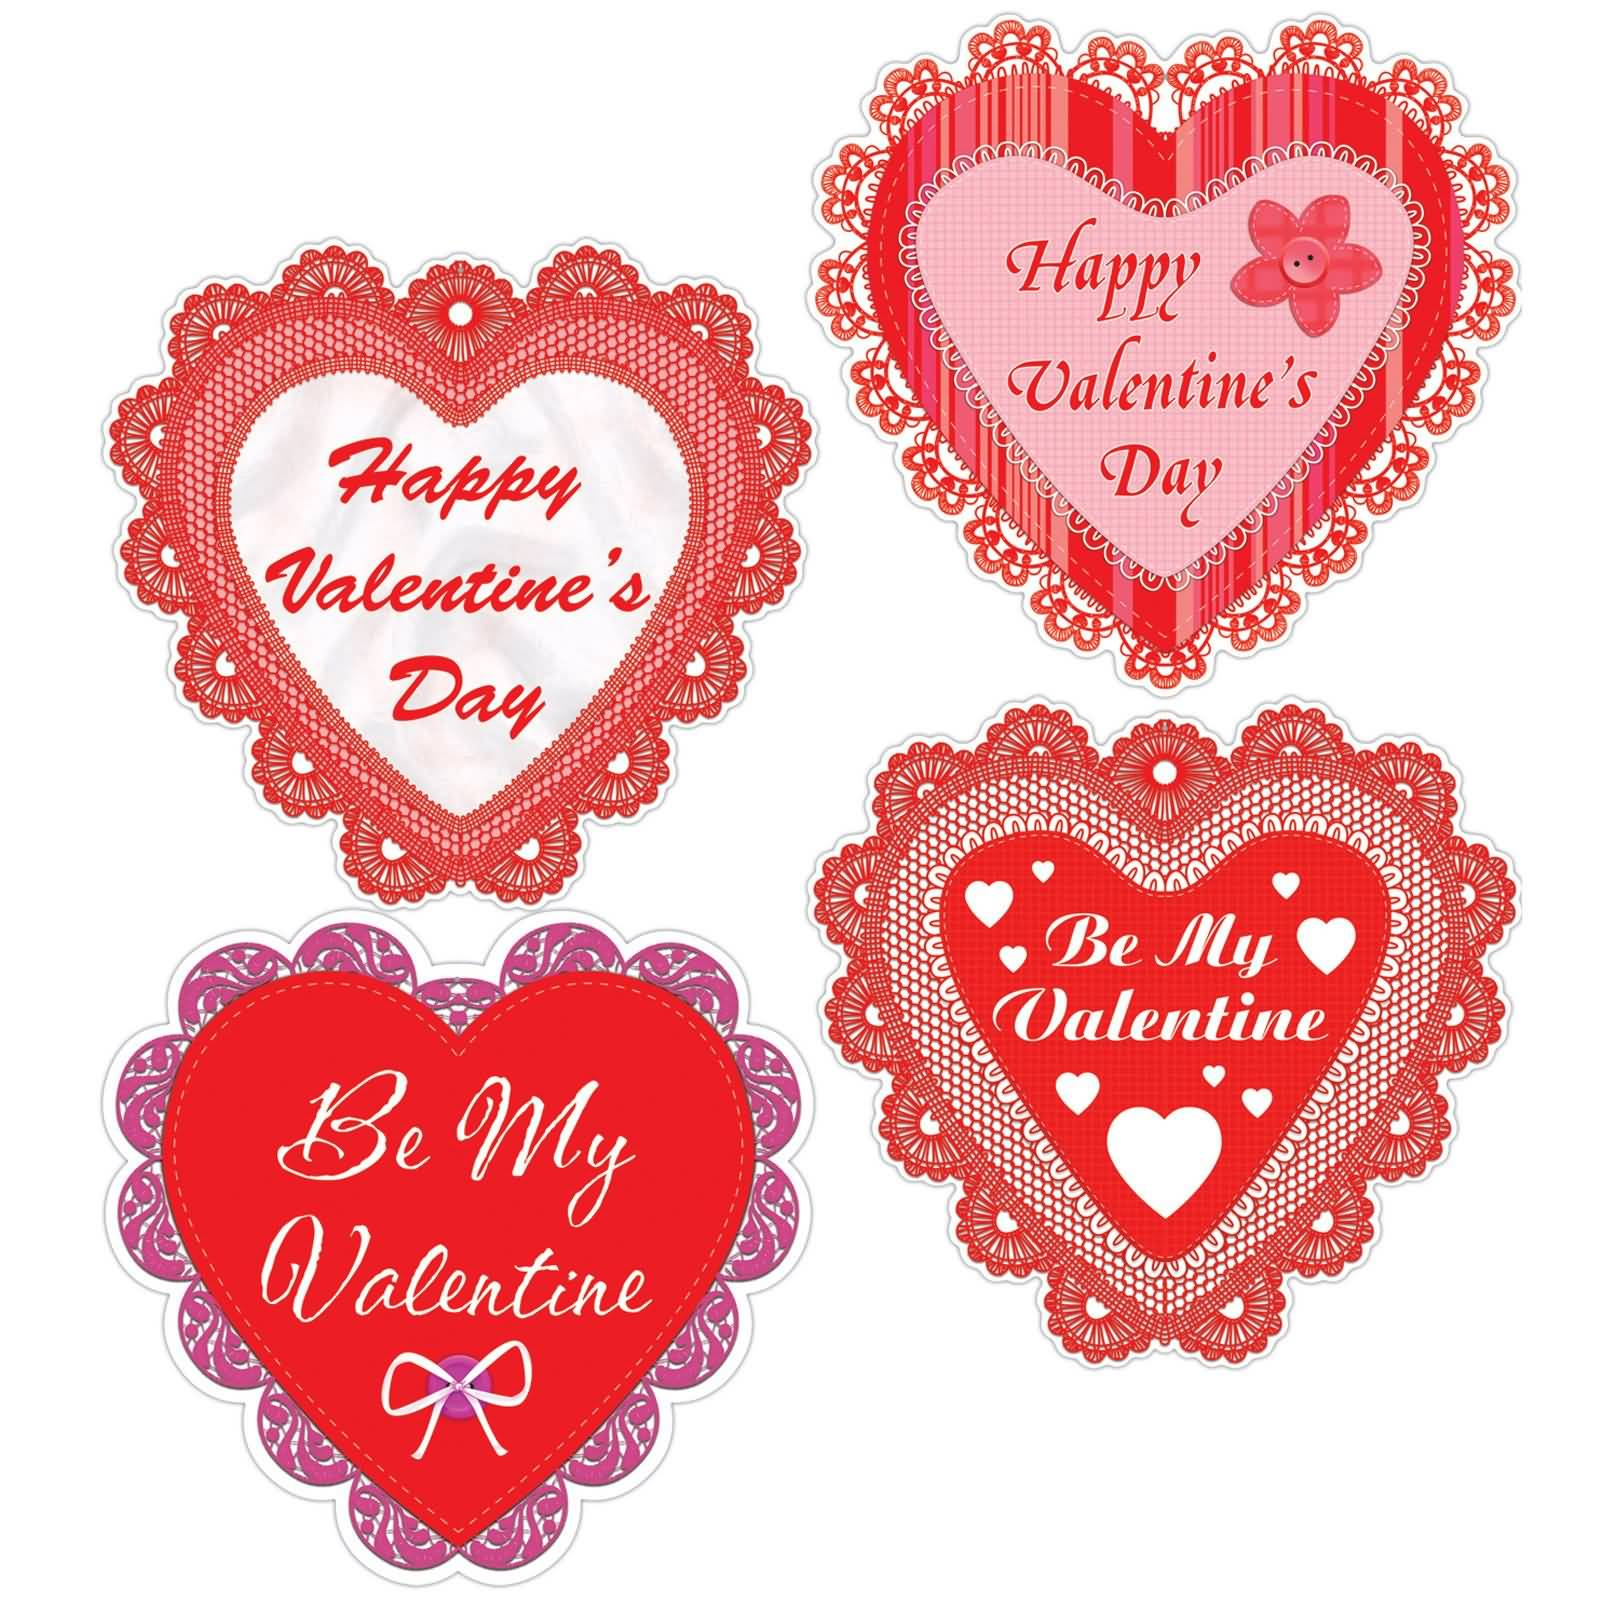 Happy s day be. Valentine's clipart my valentine image transparent library